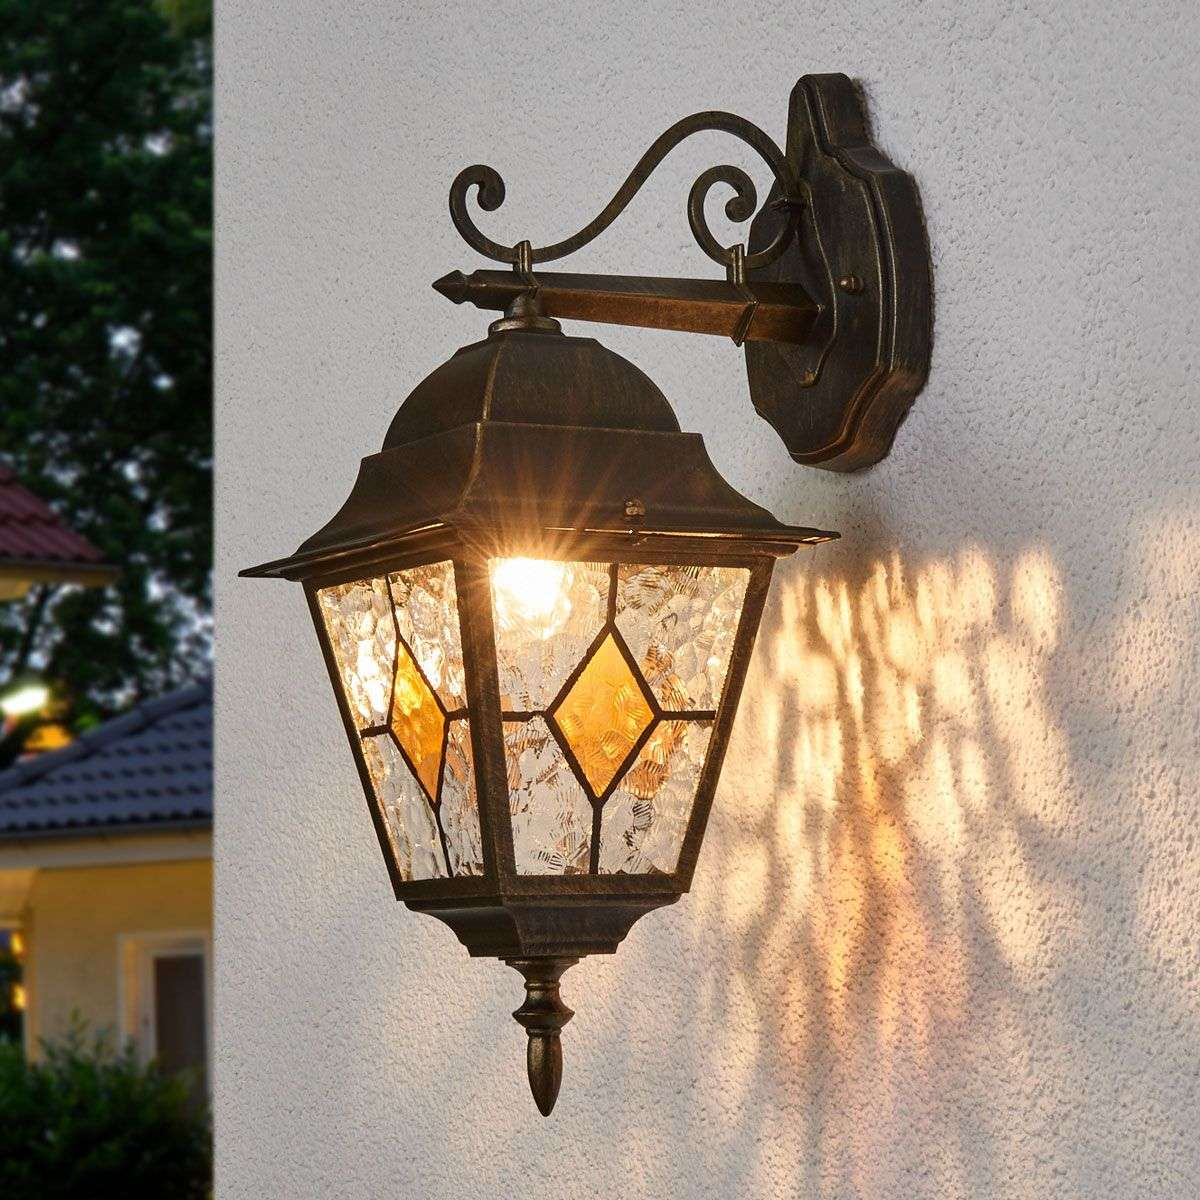 Outdoor Wall Lights Types: Jason Traditional Outdoor Wall Light